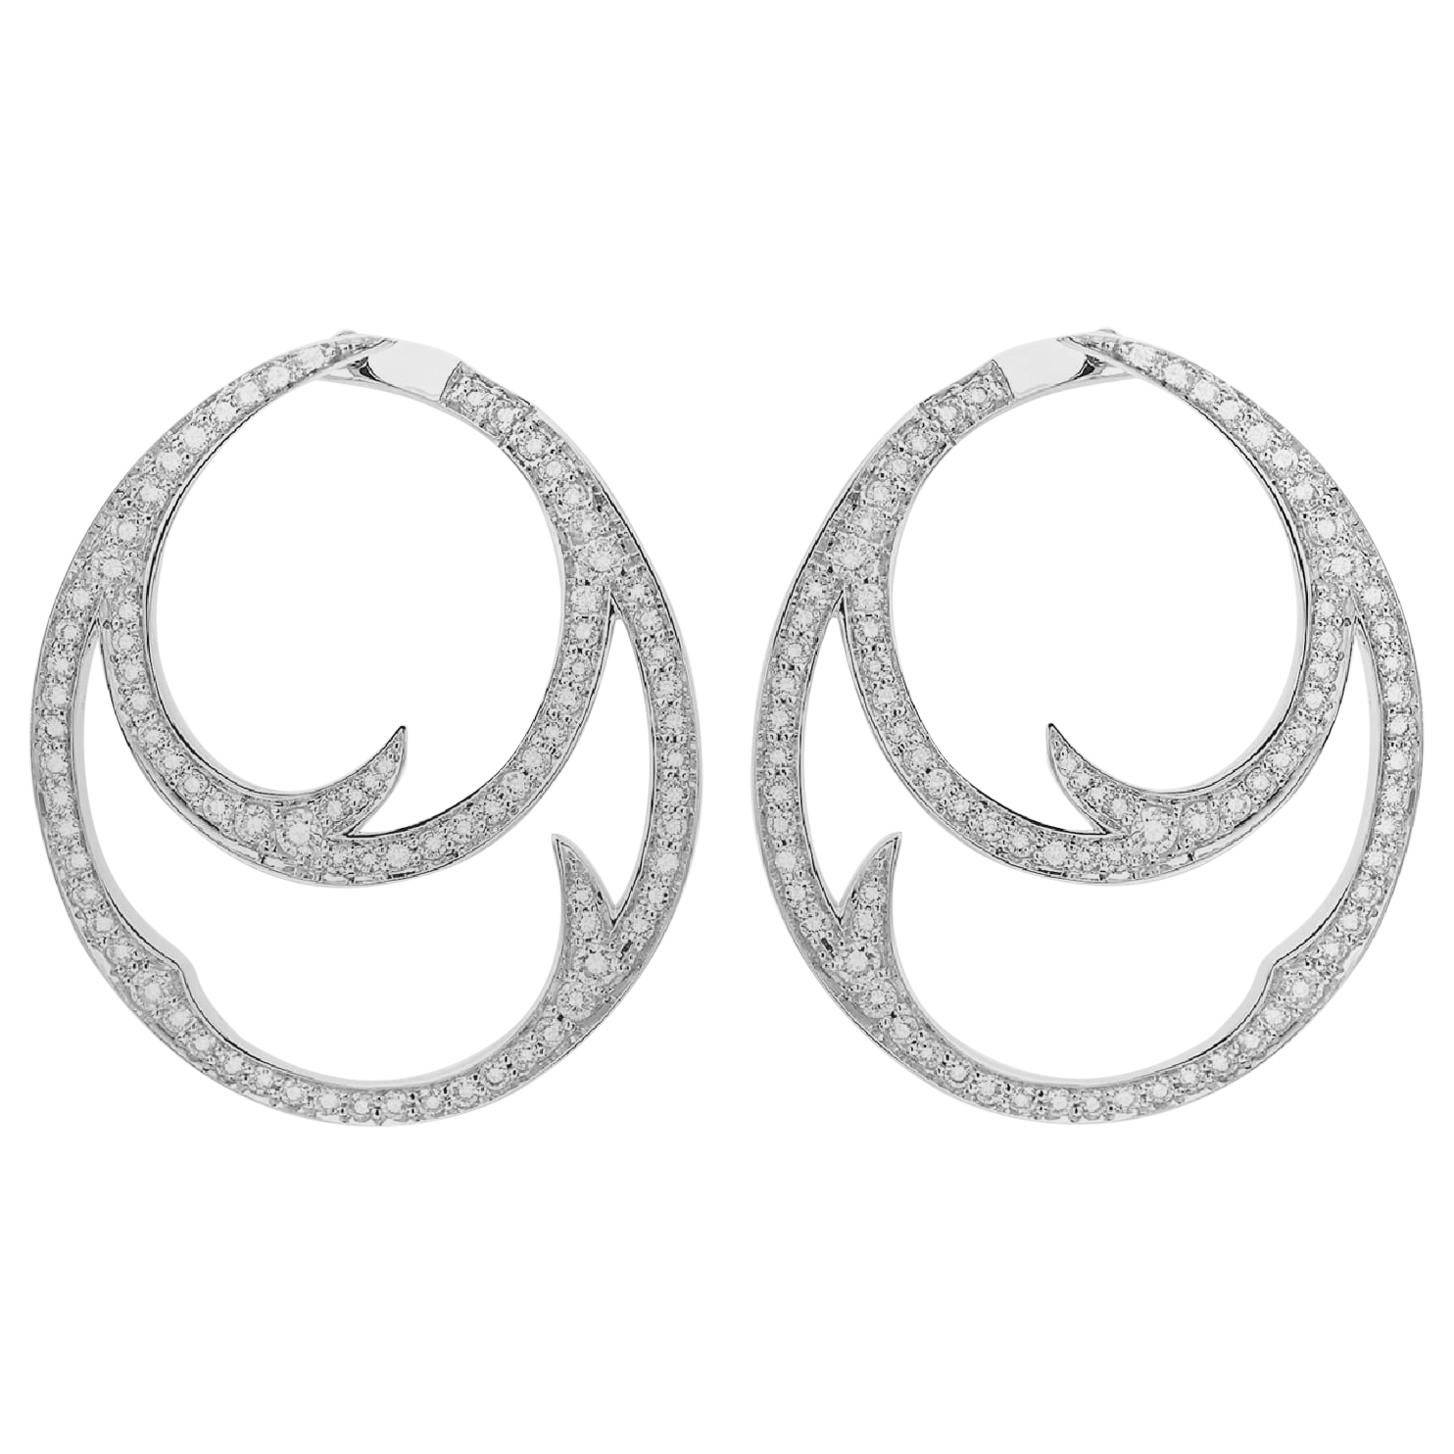 Stephen Webster Thorn 18 Carat White Gold and White Diamond Double Hoop Earrings